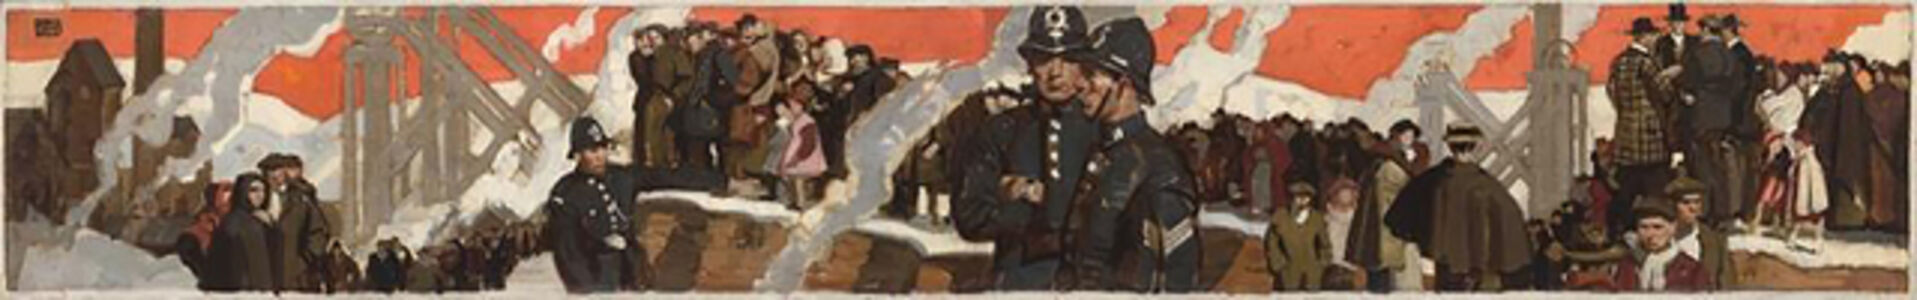 Dean Cornwell, 'Bobbies and Crowds Gathered in Industrial Setting', 1935